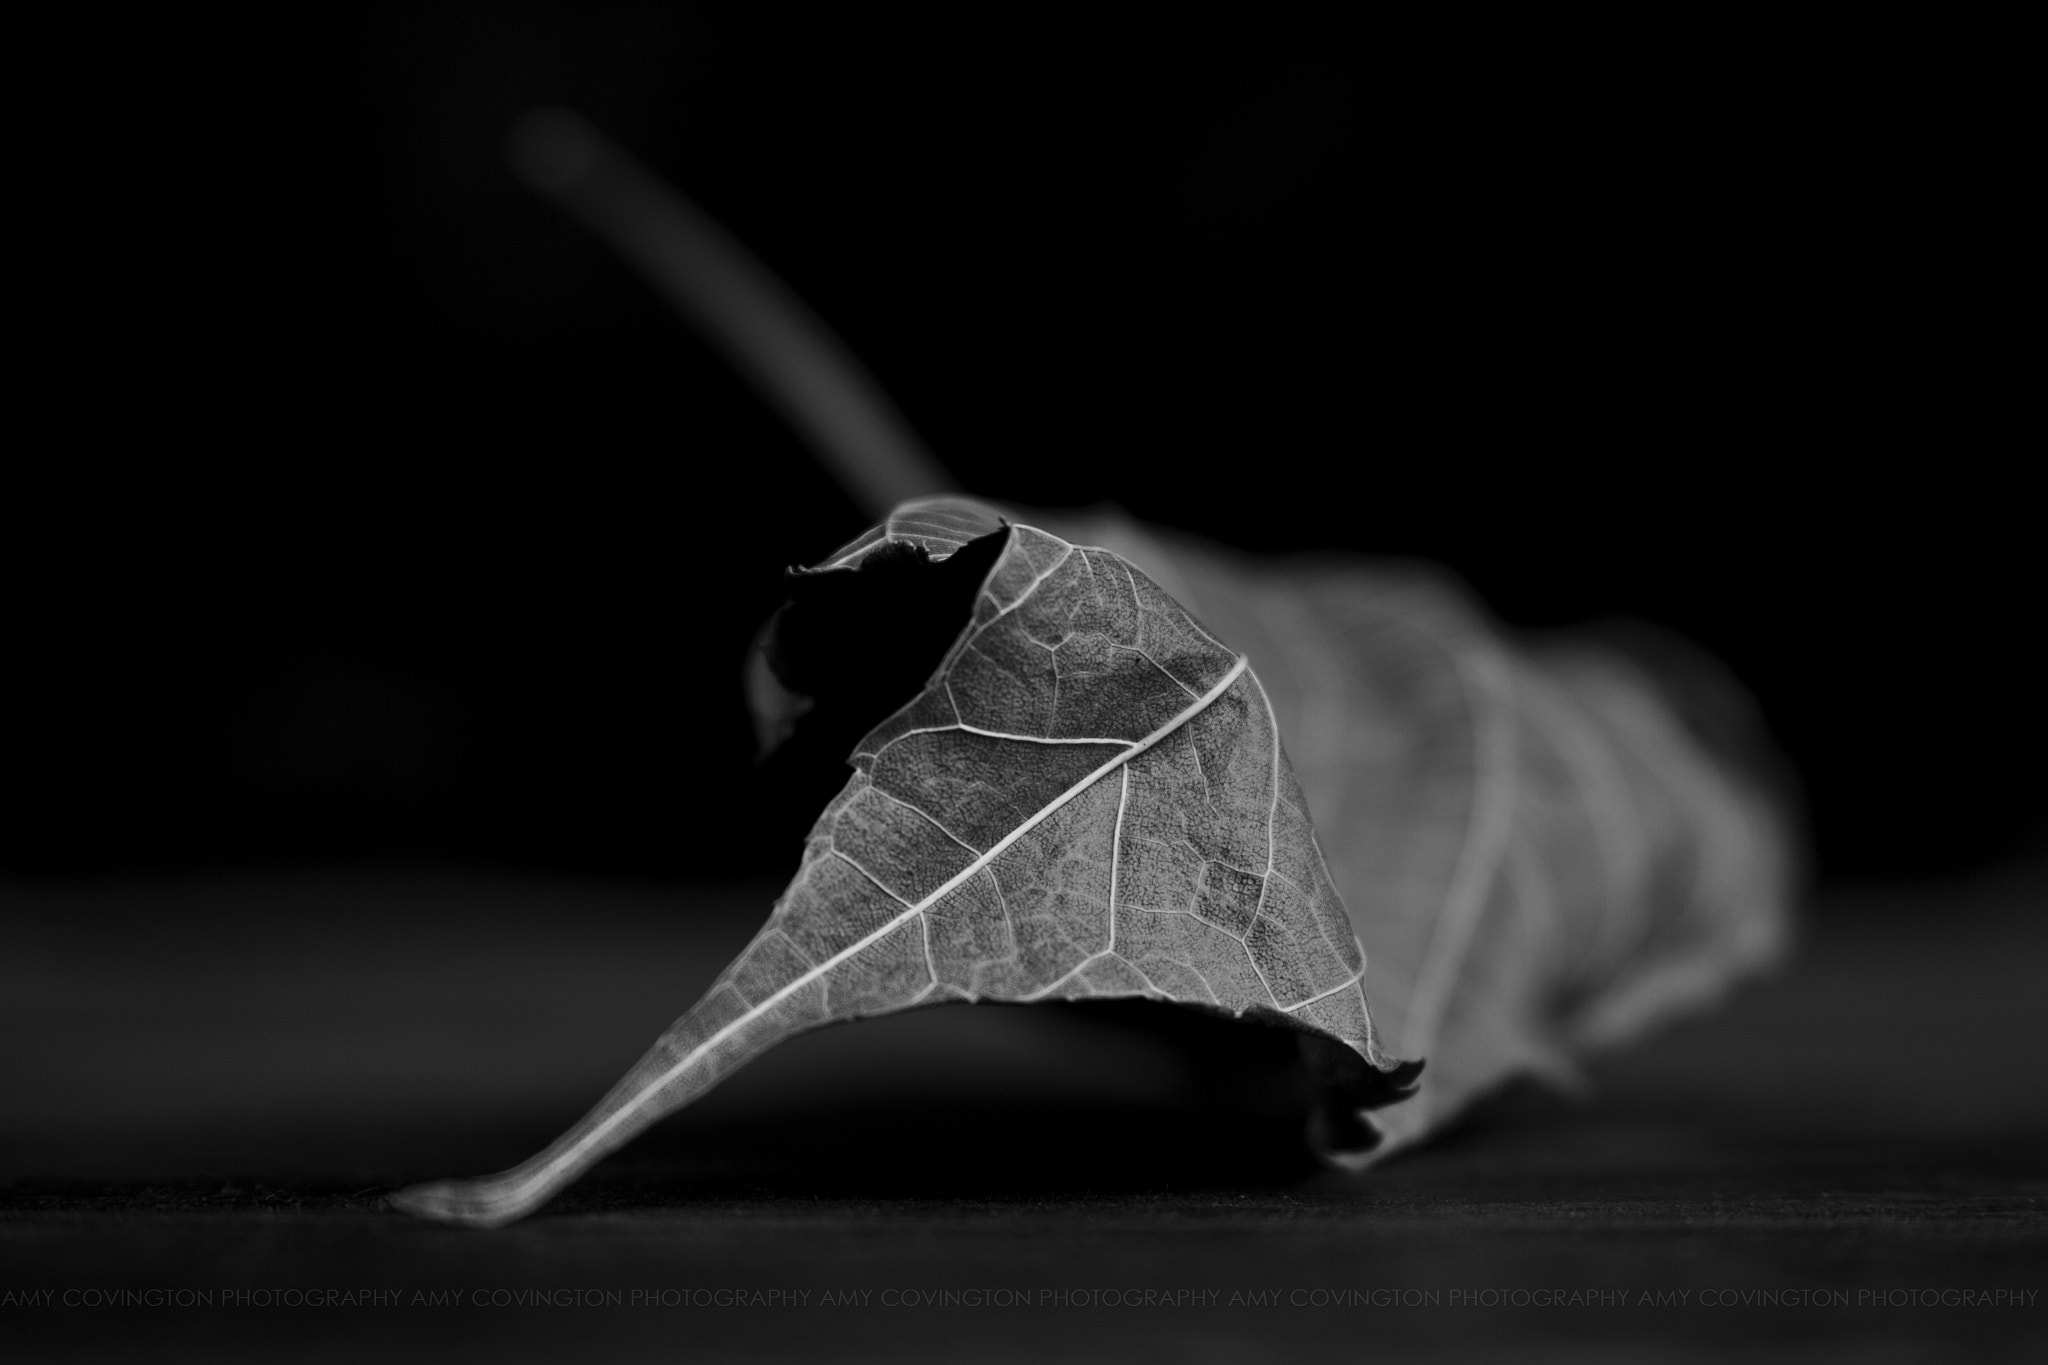 Photograph 146/365 : The sleeping leaf by Amy Covington on 500px